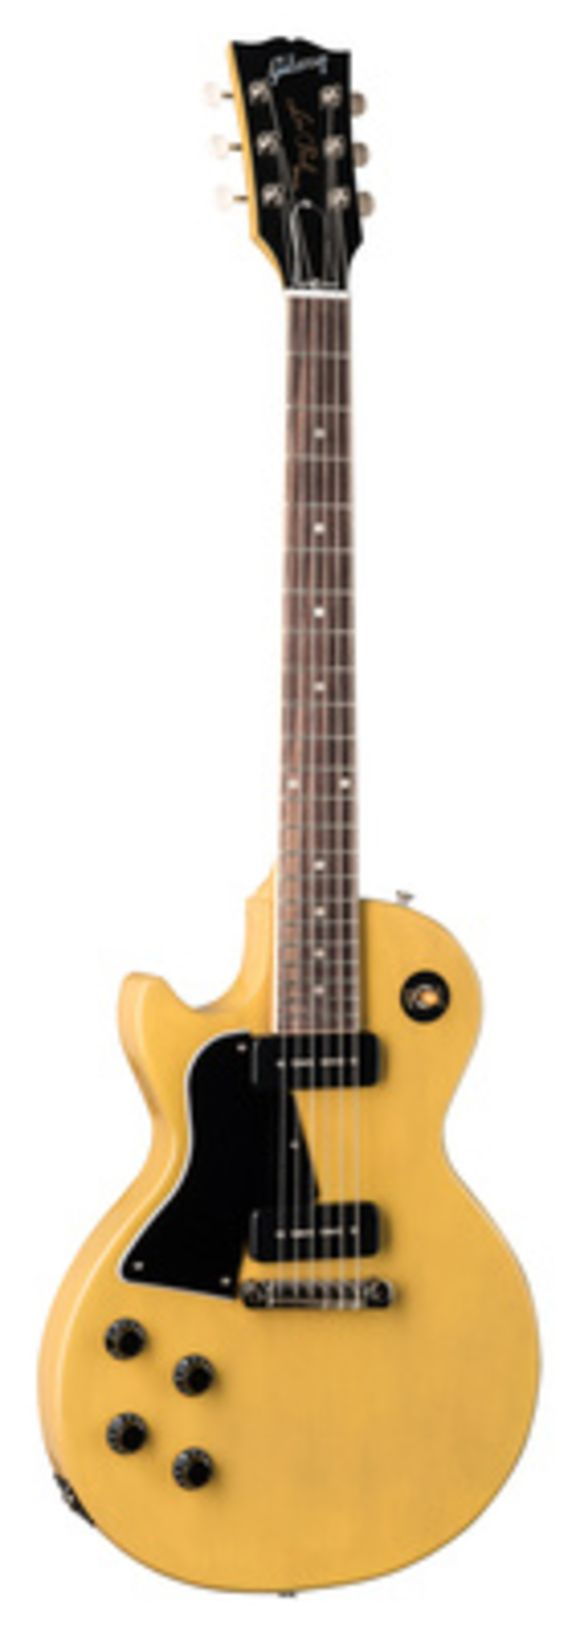 LP Special SC TV Yellow LH Gibson